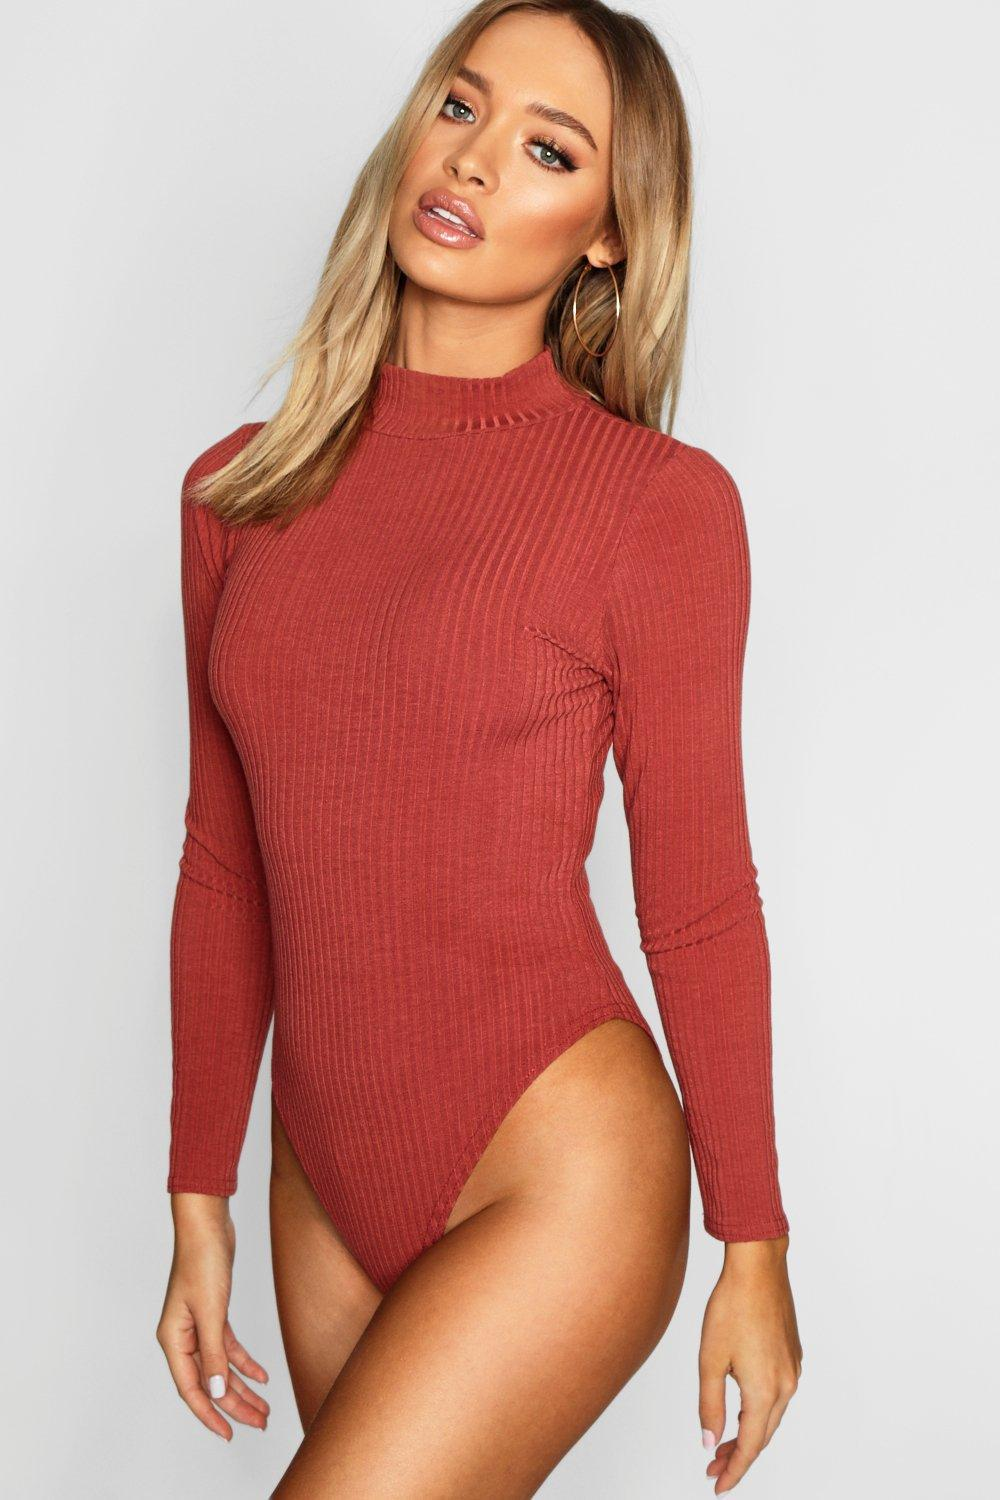 69620d35d Boohoo Turtle Neck Long Sleeve Knitted Rib Bodysuit in Red - Lyst